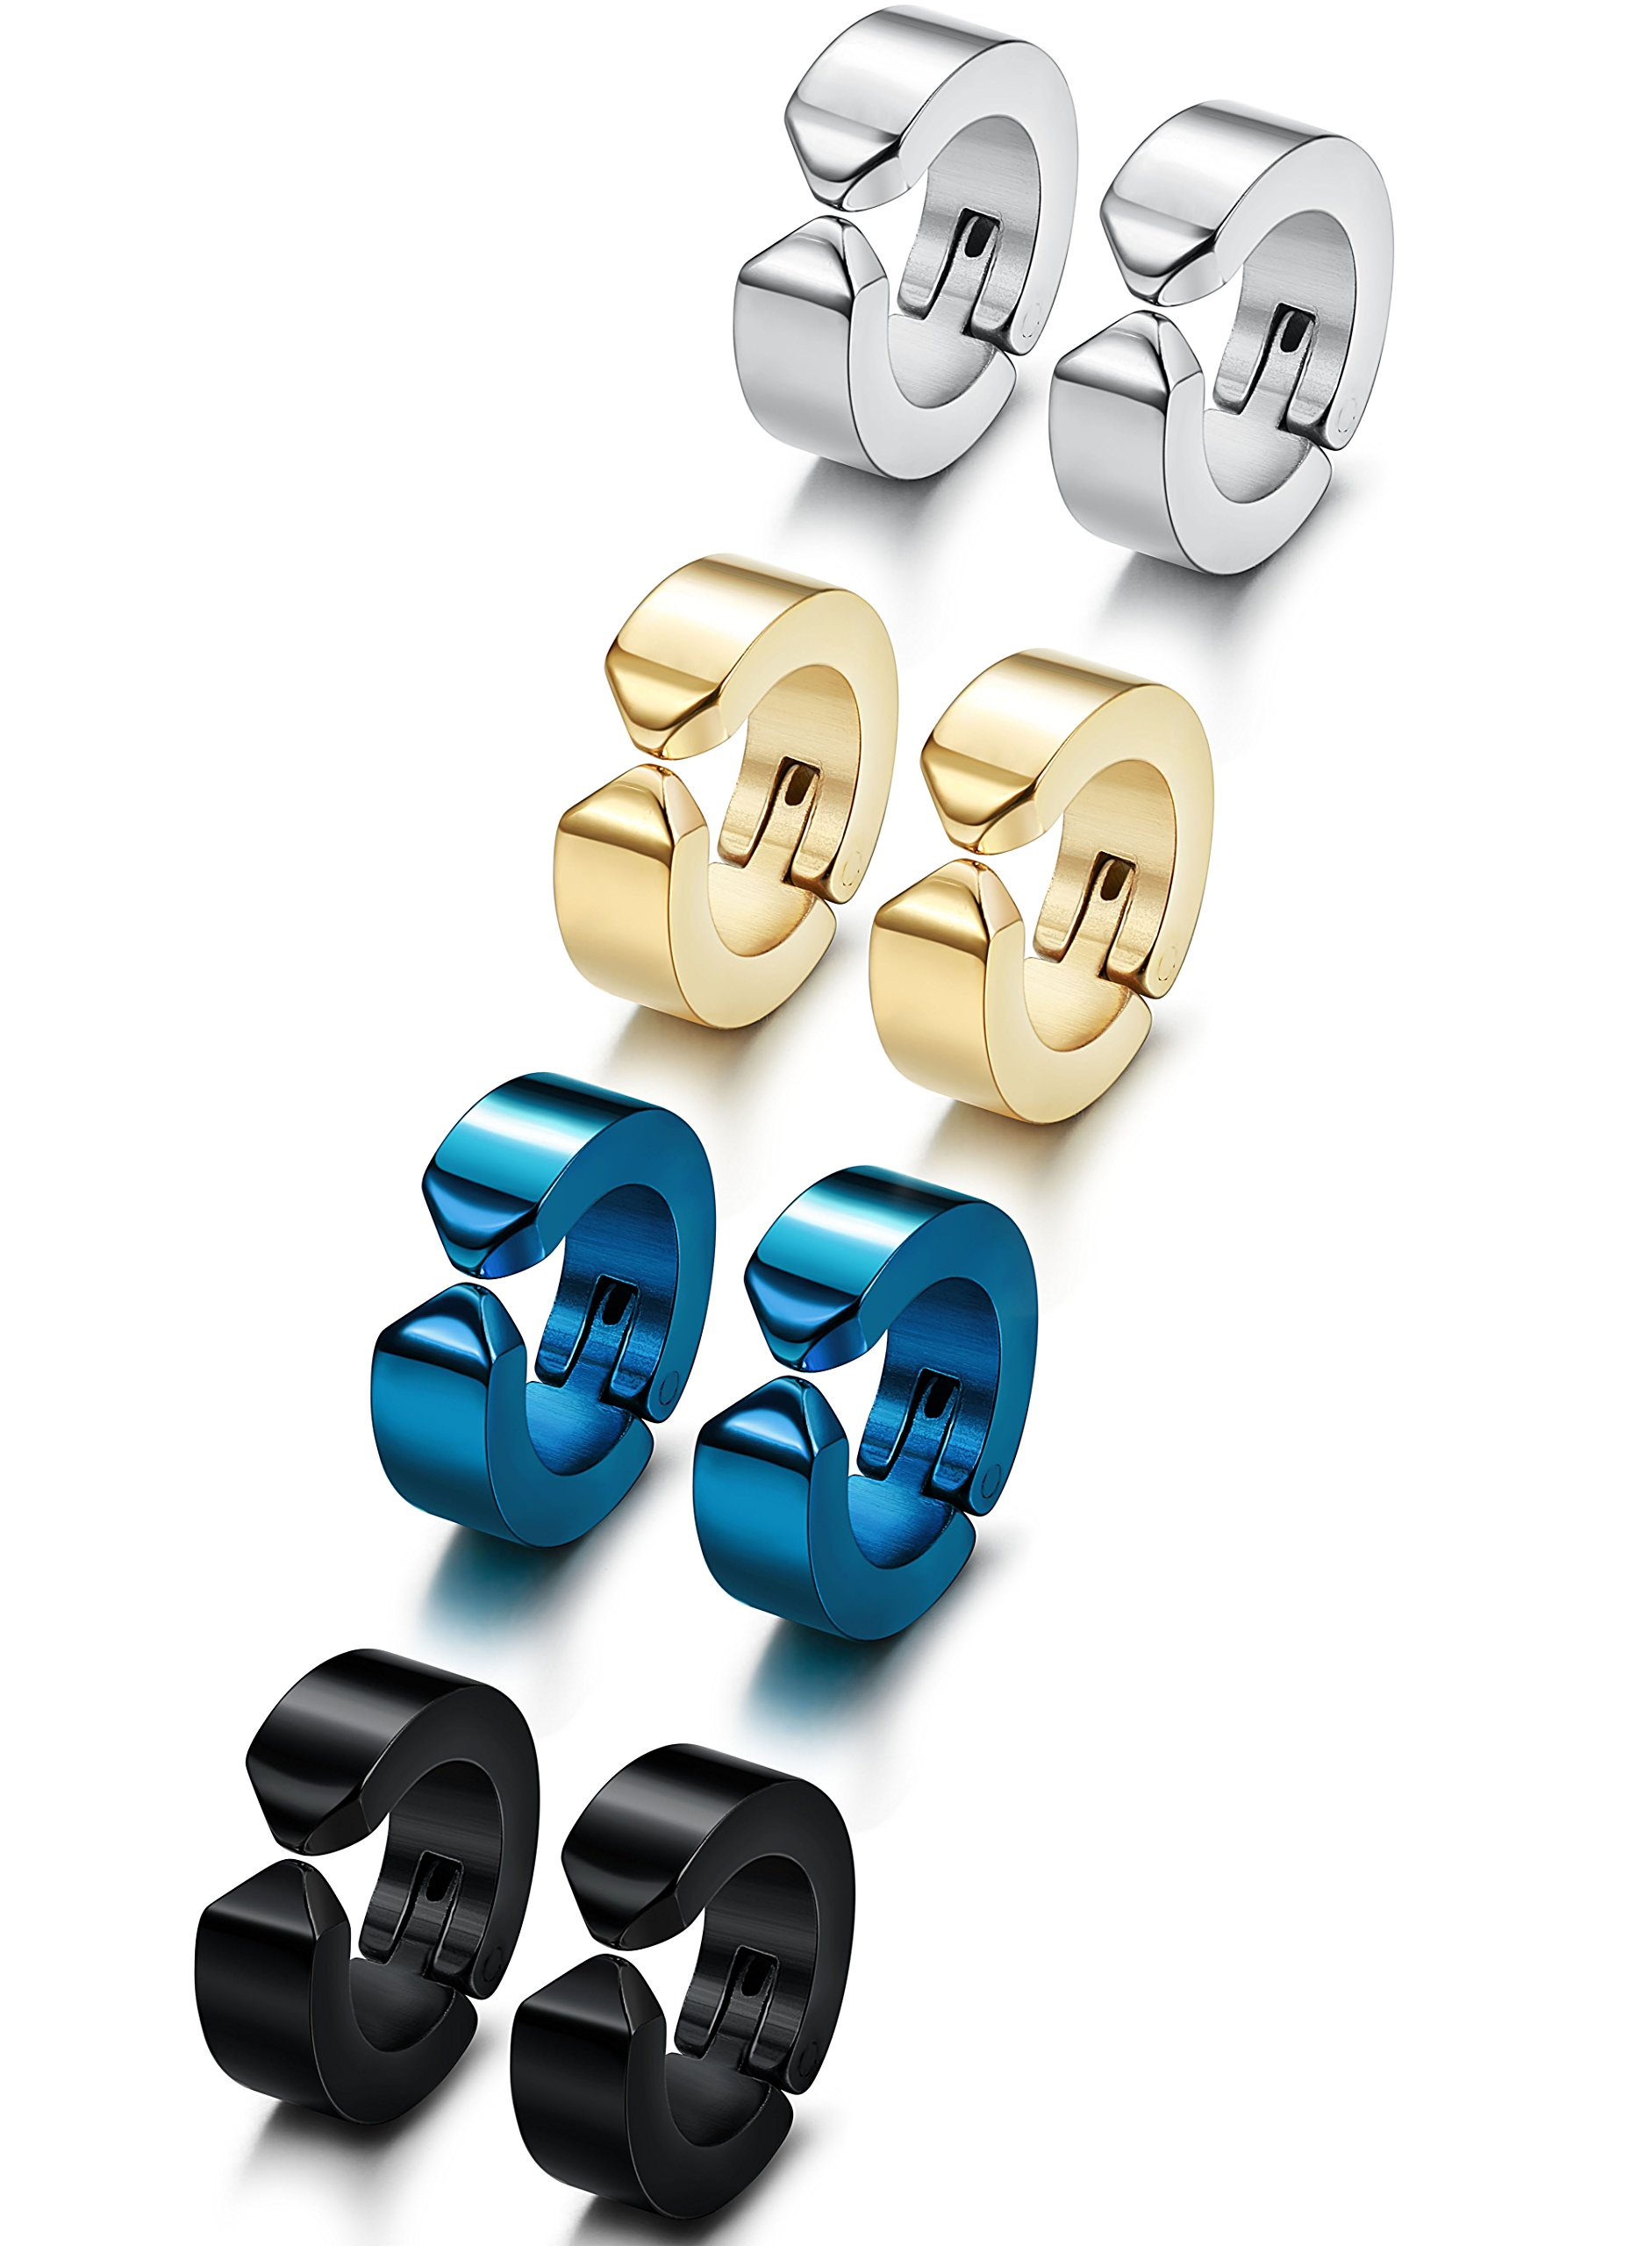 Jstyle Stainless Steel Mens Womens Clip On Earrings Hoop Huggie Non-Piercing 4 Pairs a Set